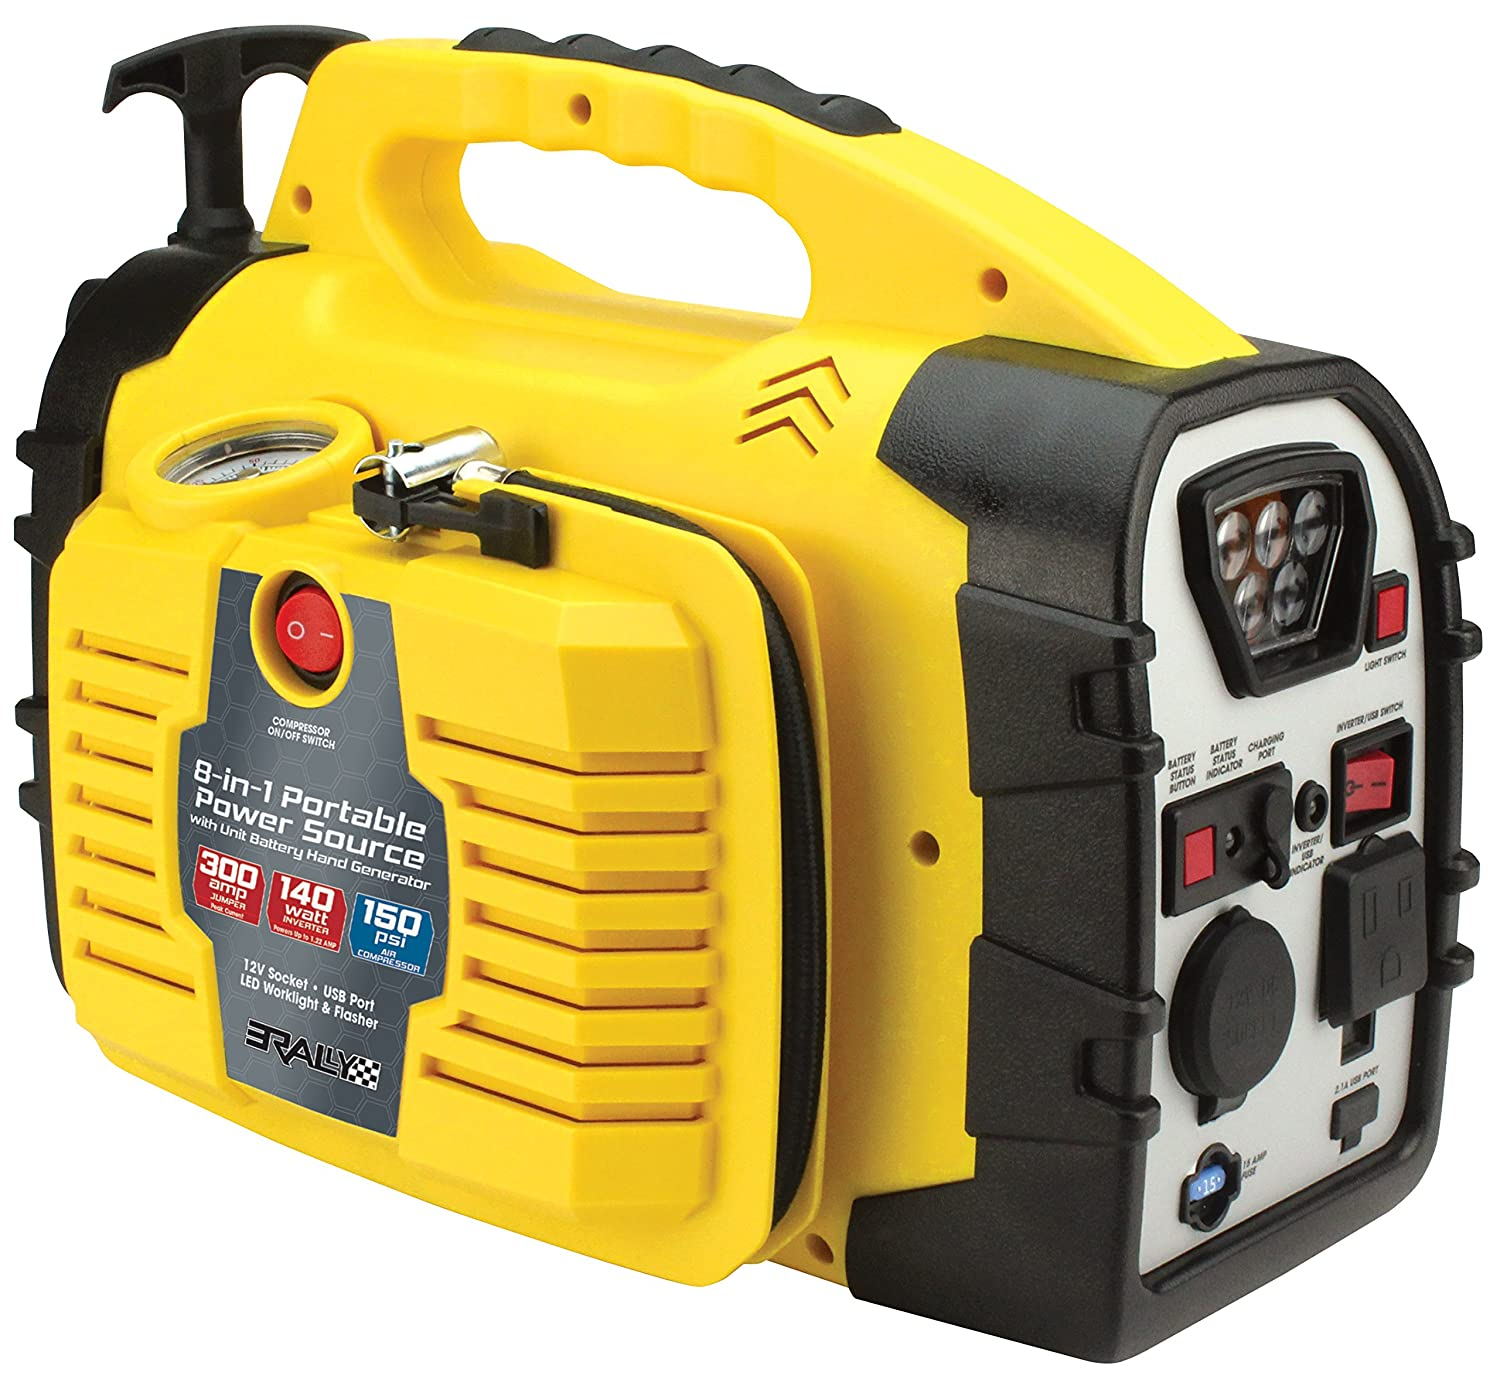 Amazon Rally Portable 8 in 1 Power Source and Jumpstarter